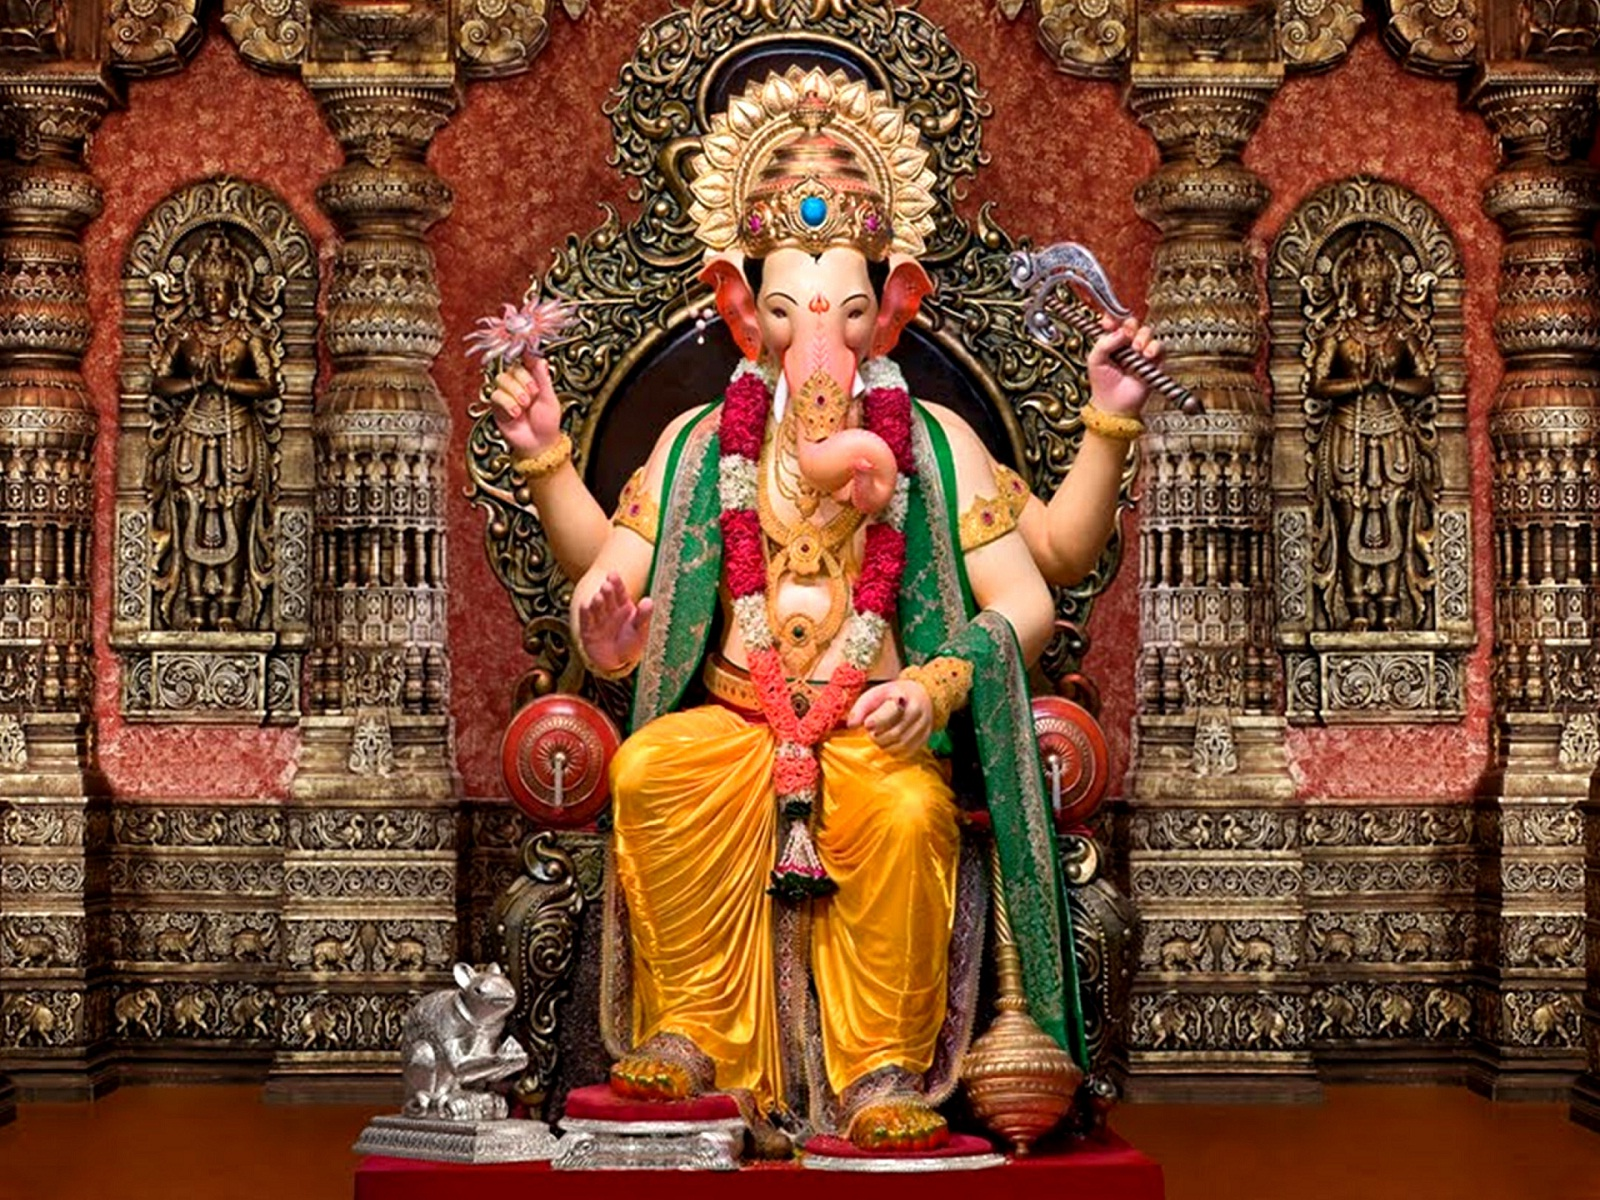 Download Shree Ganesh Pics Wallpapers Gallery | 1600 x 1200 jpeg 791kB